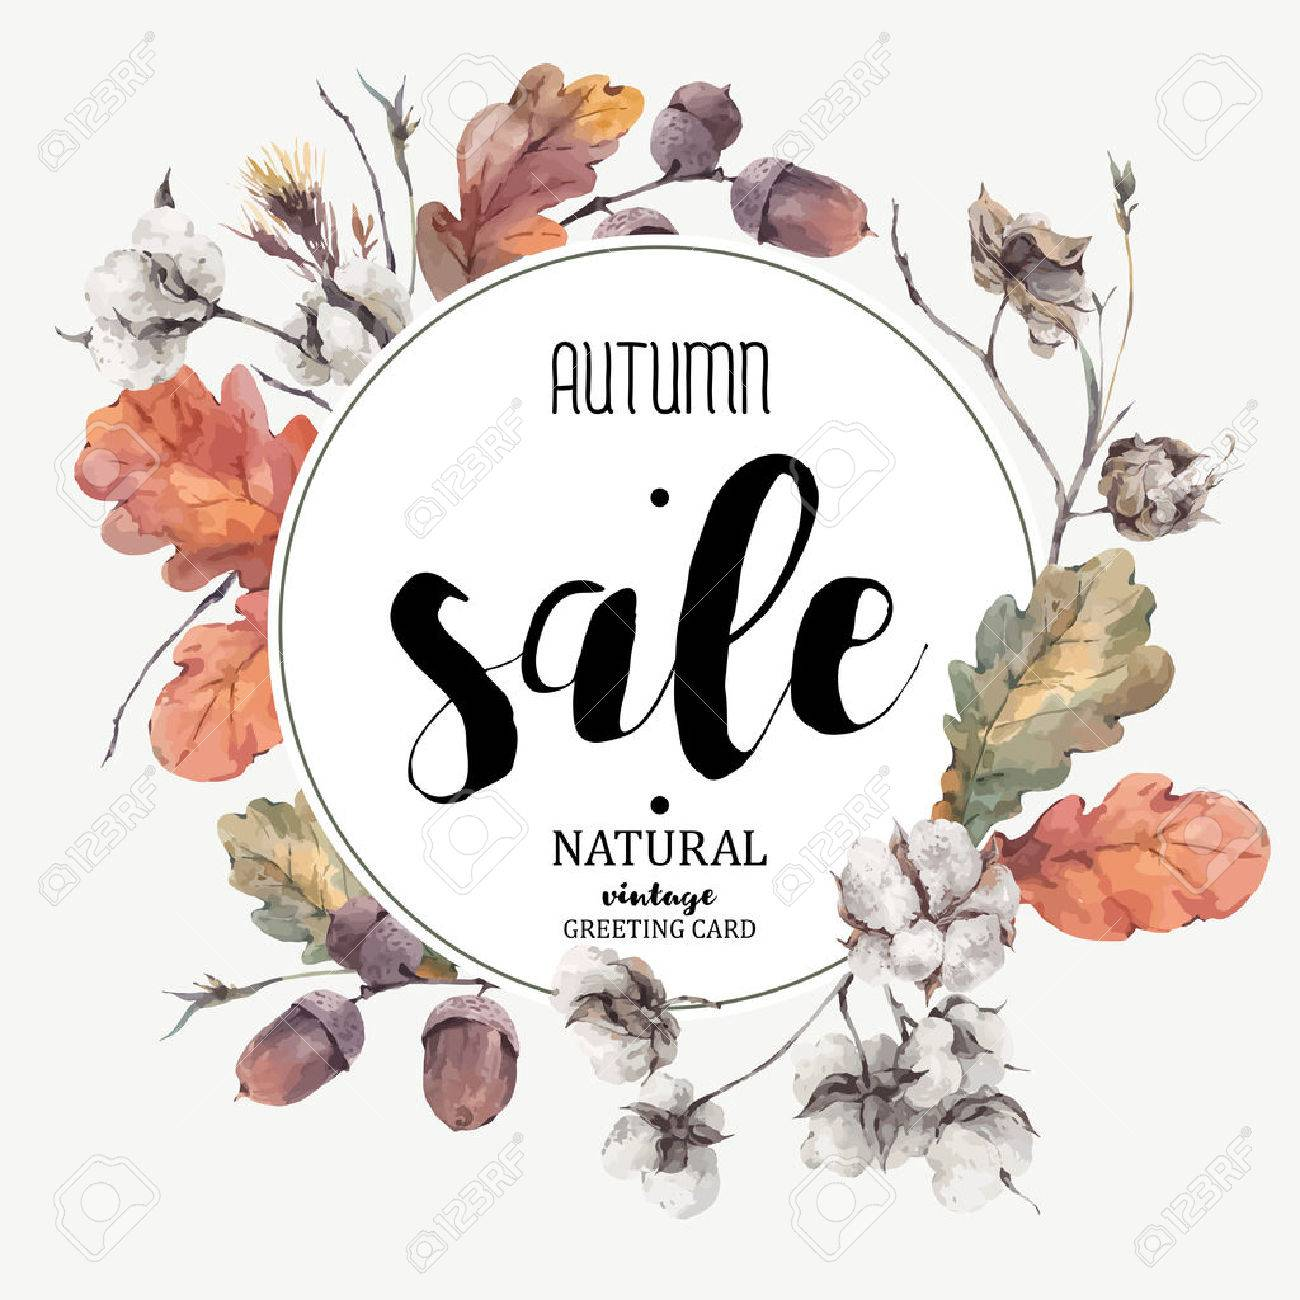 Autumn vintage bouquet of twigs, cotton flower, yellow oak leaves and acorns. Botanical illustrations. Sale card. Isolated on white background Stock Vector - 60772257